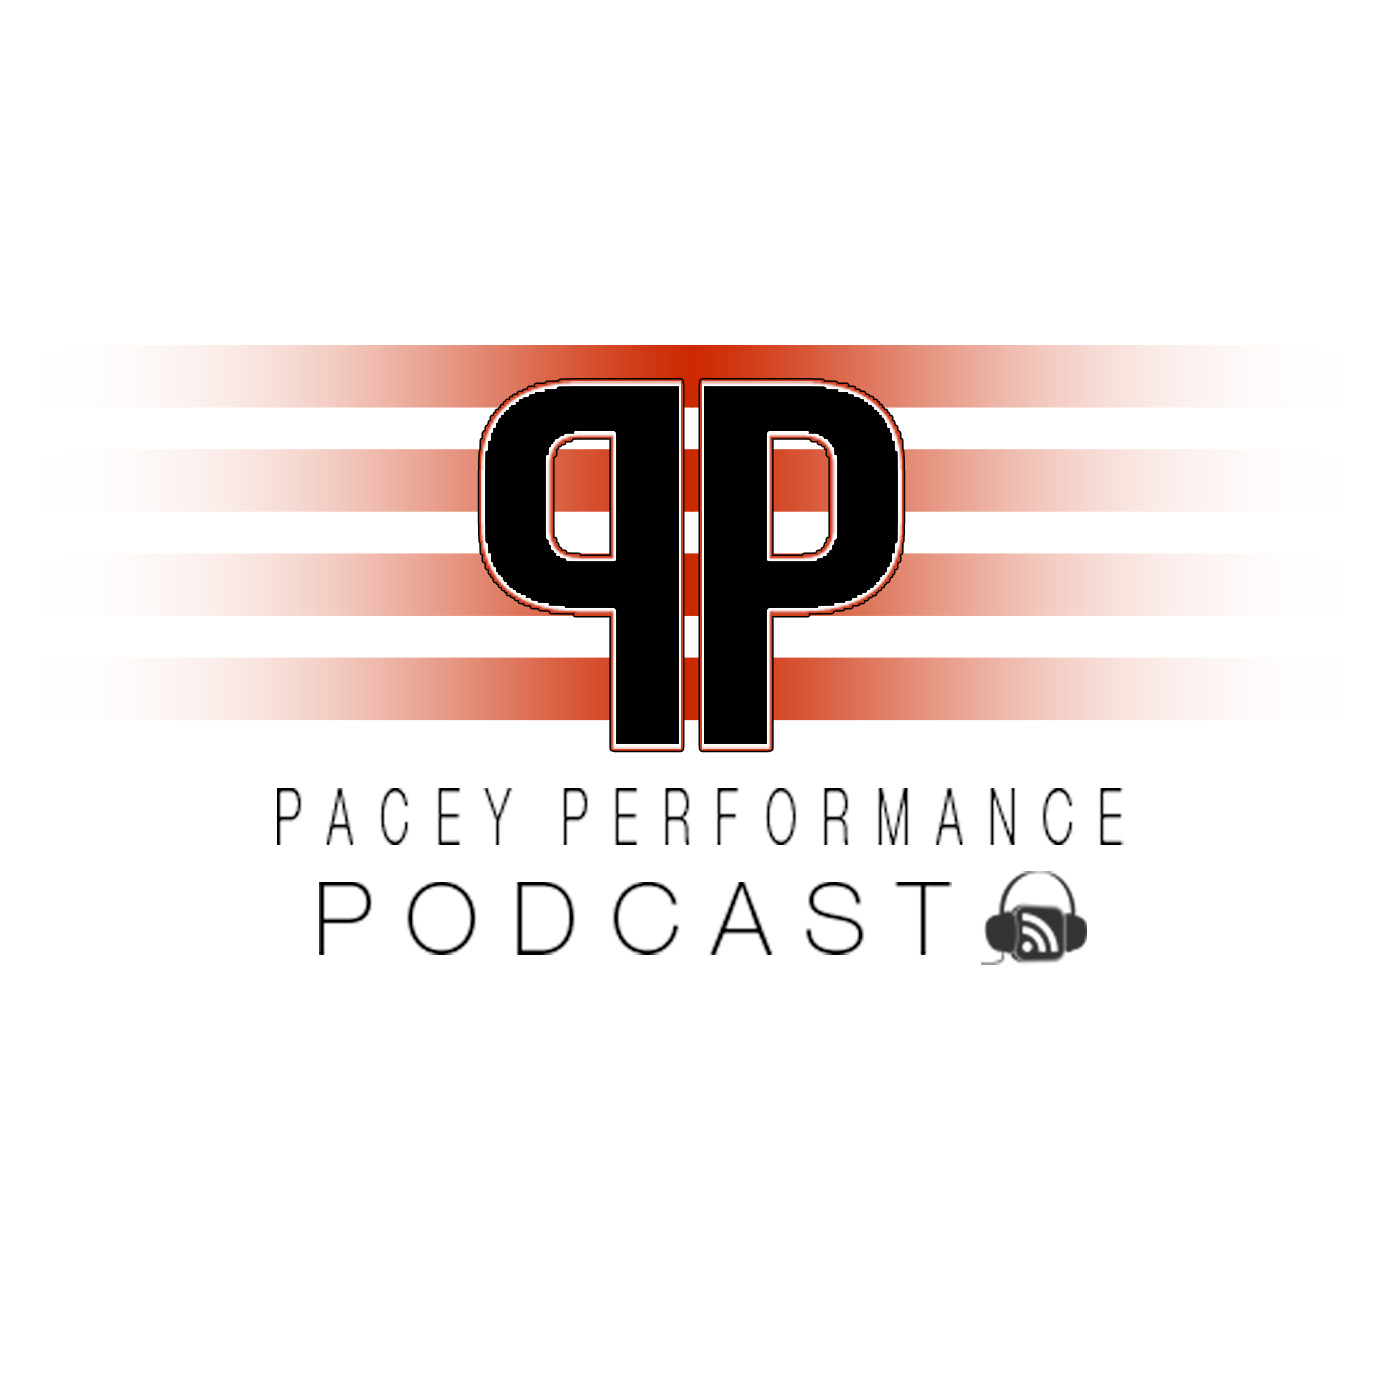 Pacey Performance Podcast #206 - Pratik Patel (Director of Performance Nutrition and Assistant S&C Coach at New York Giants)